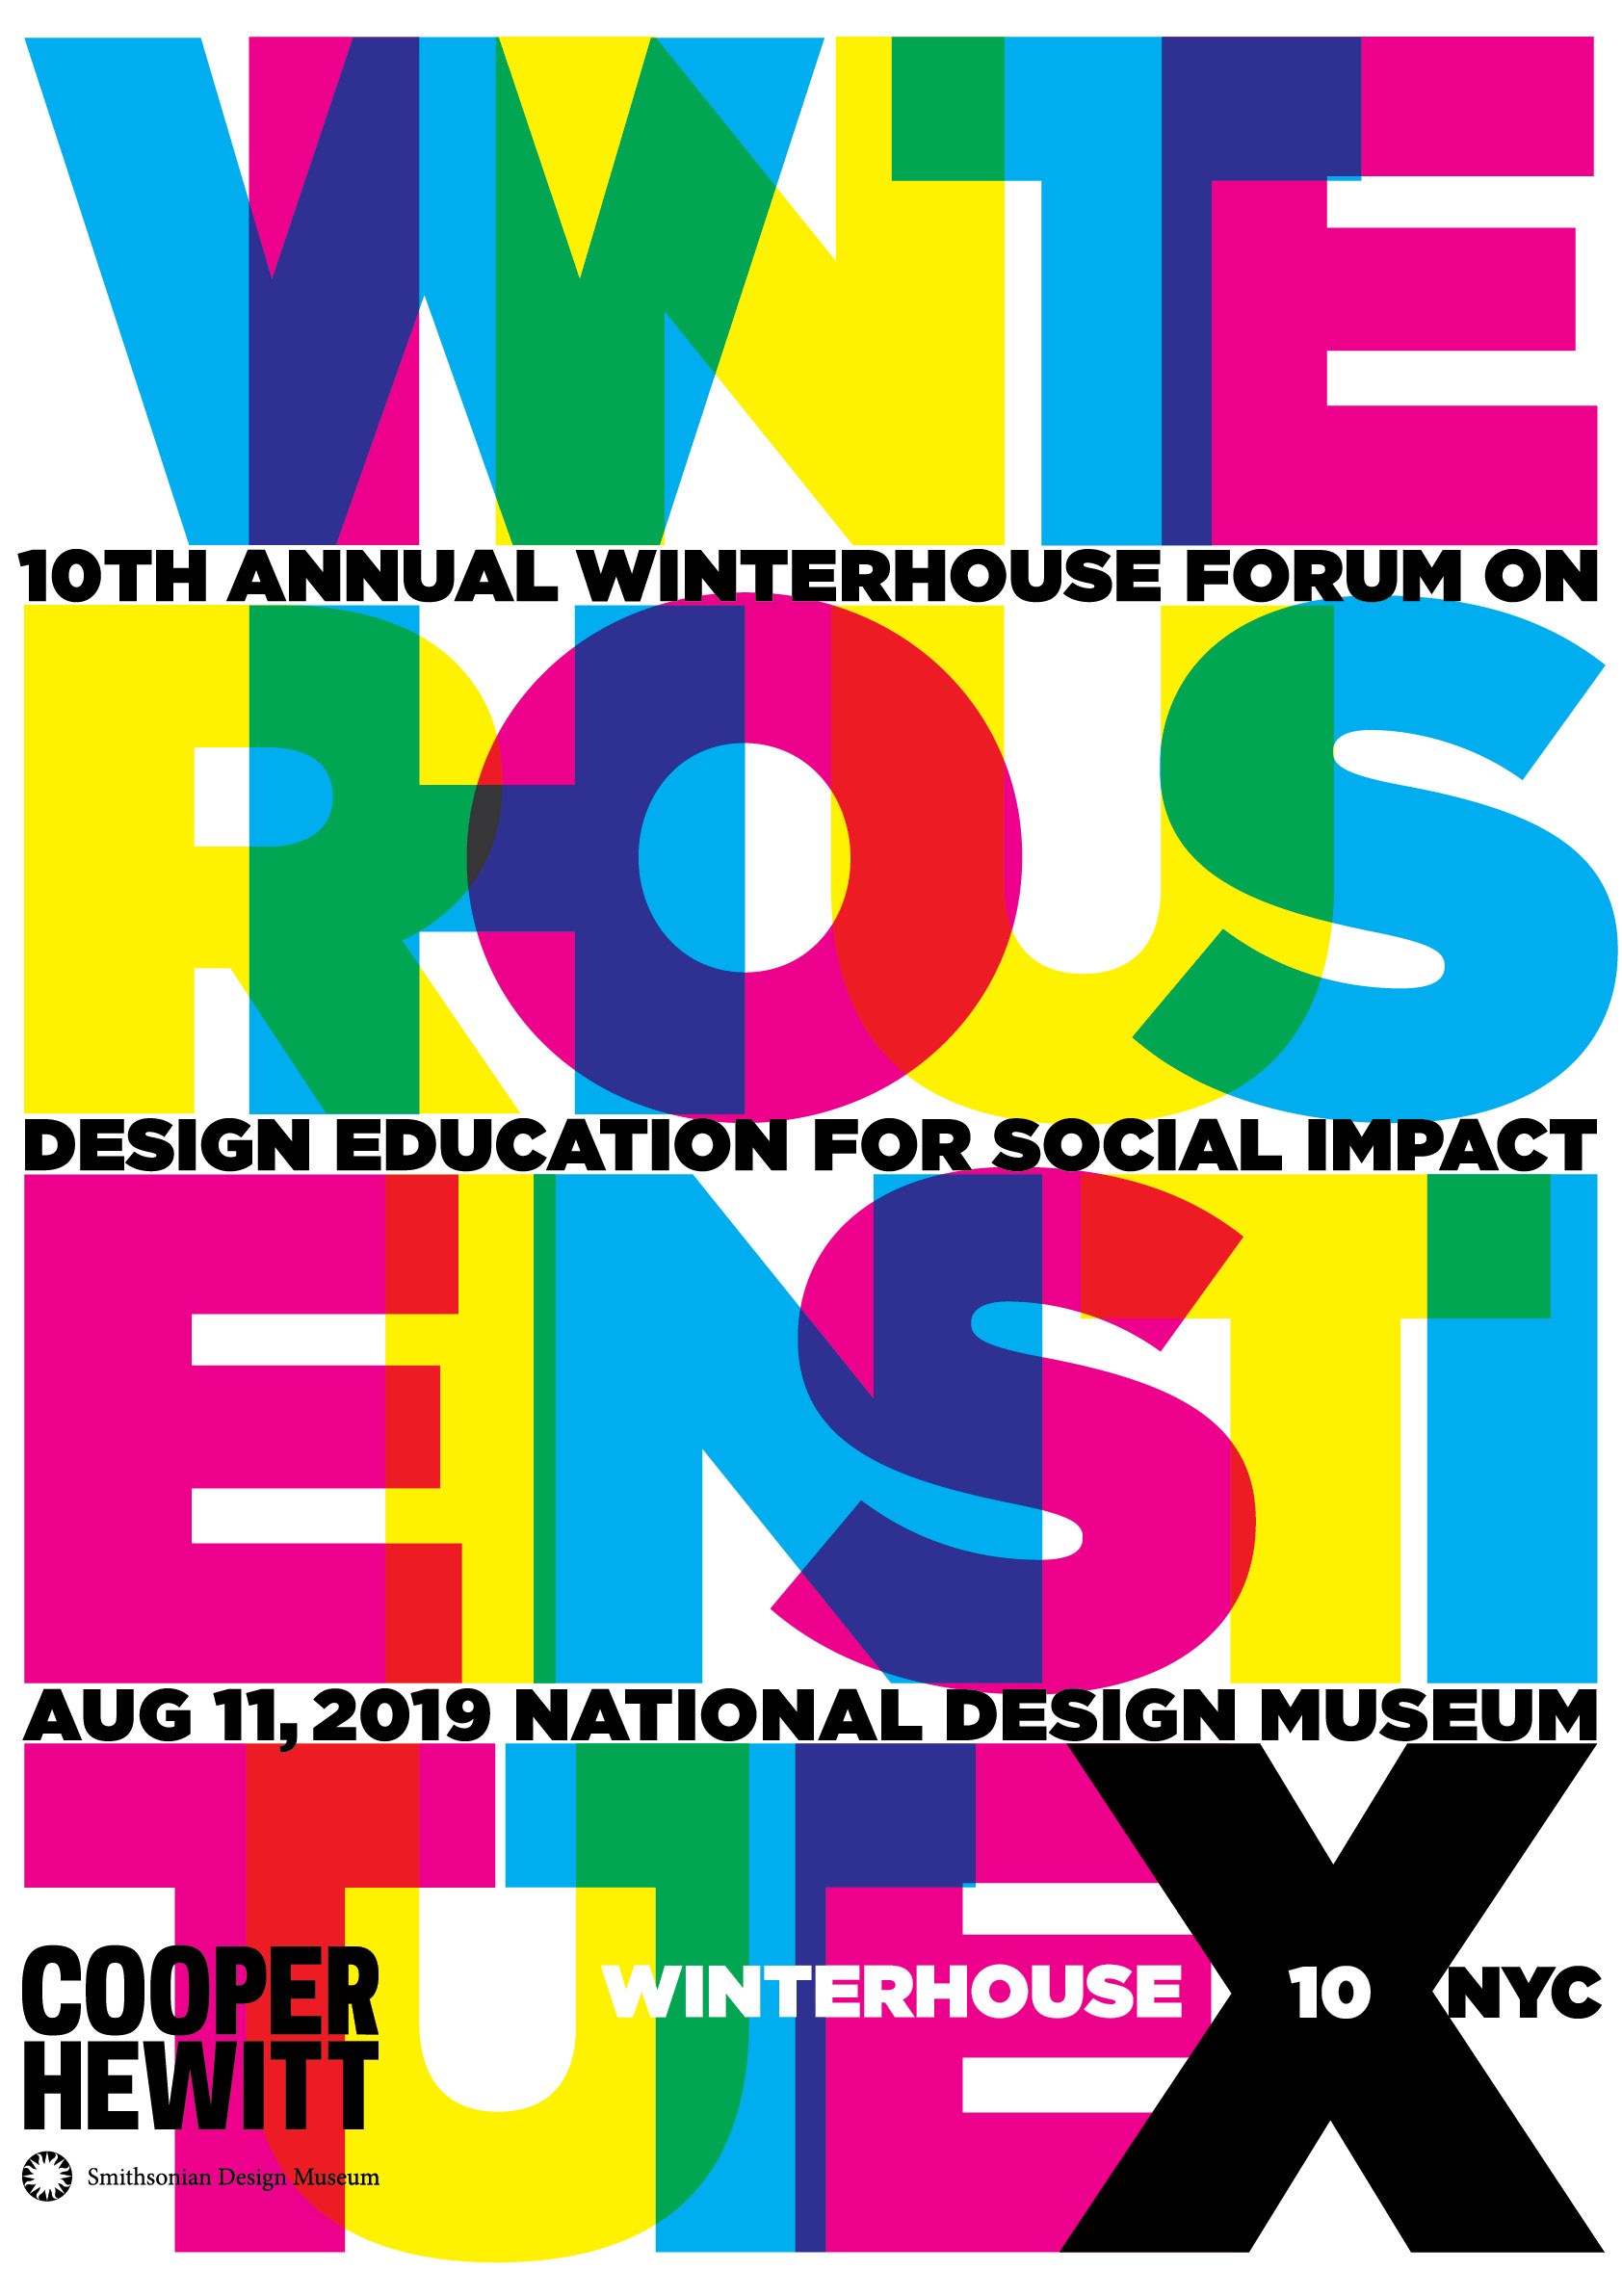 2019 Winterhouse Symposium POSTER ART www.jpg